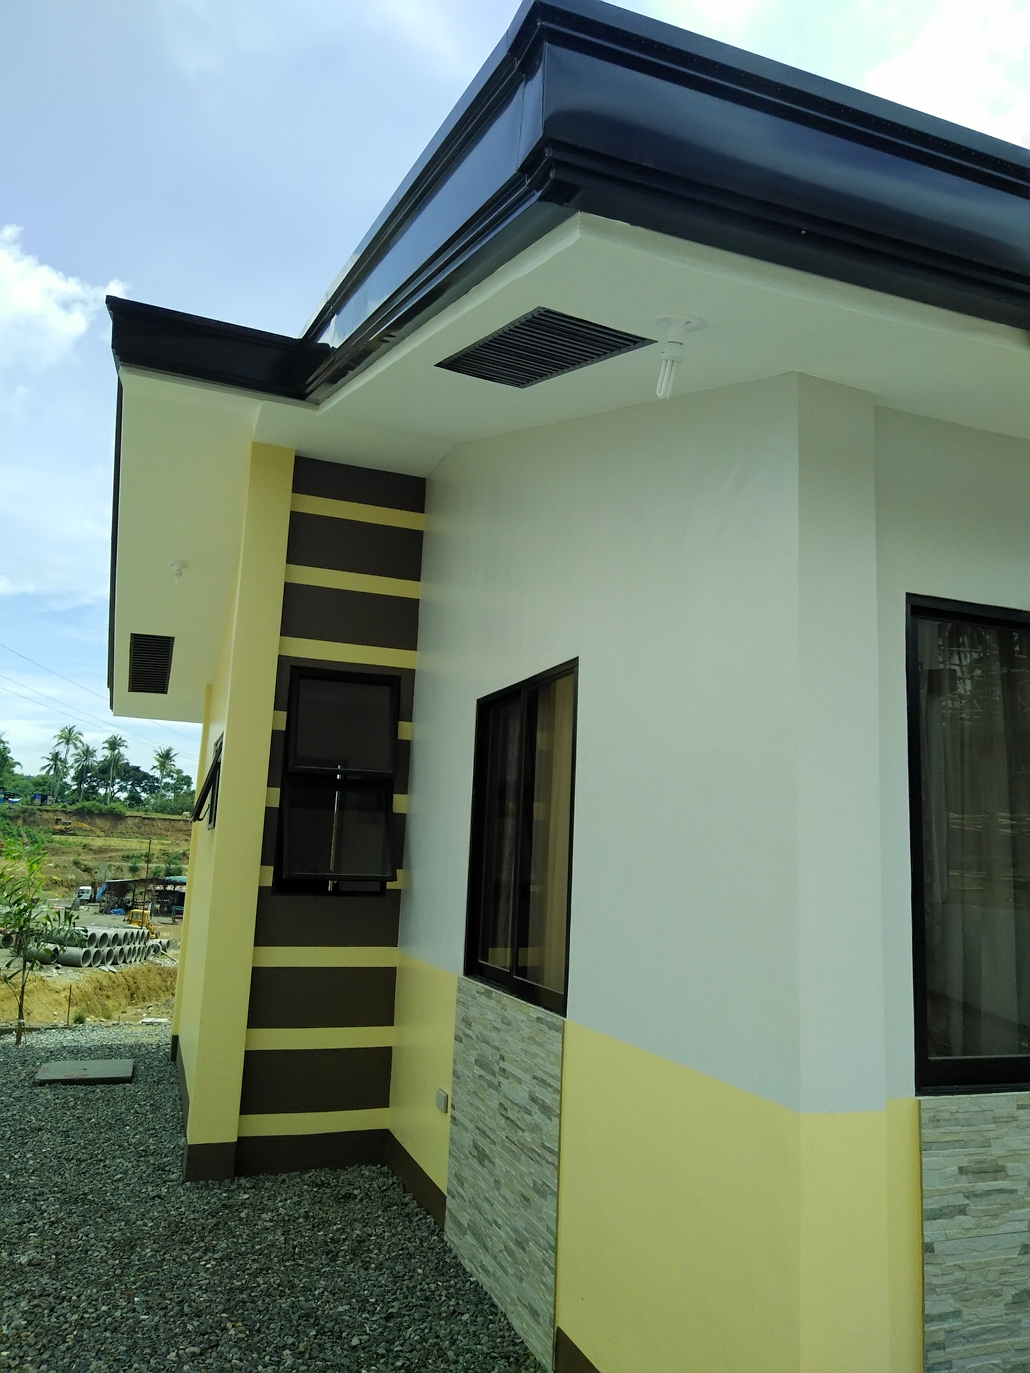 GR160 : Las Casas de Maria Affordable Houses, Indangan, Davao City